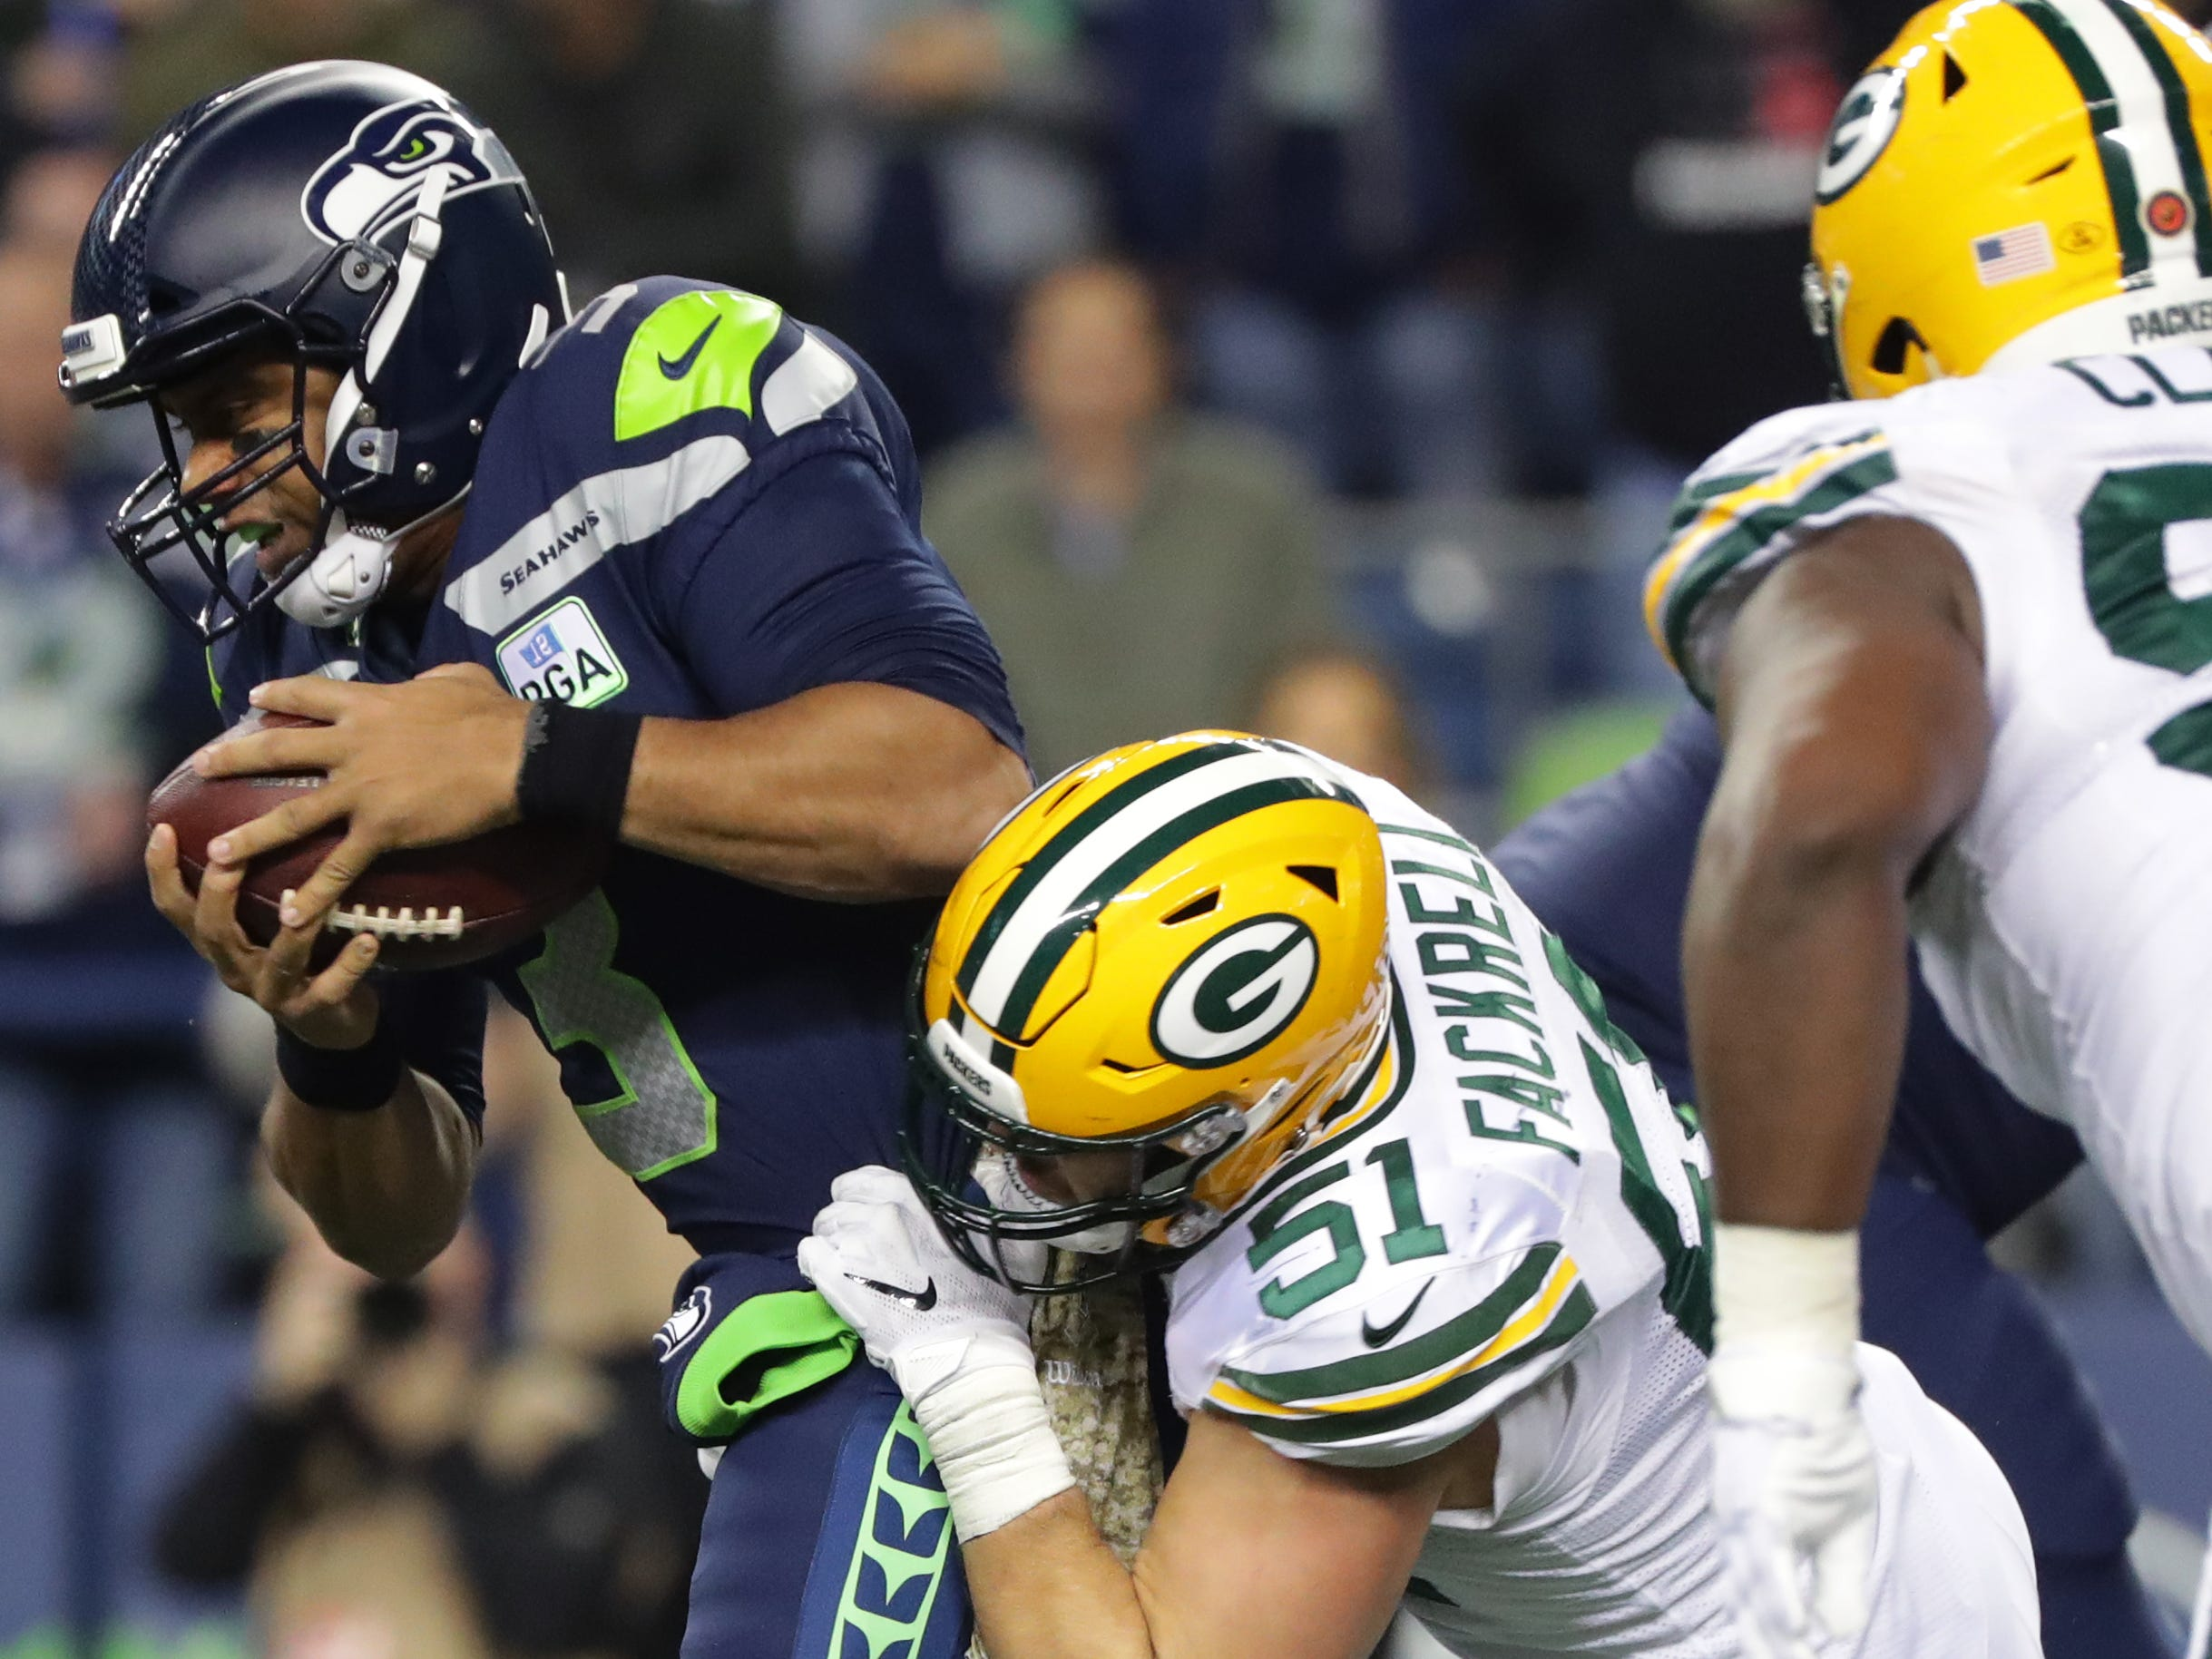 Seattle Seahawks quarterback Russell Wilson (3) is sacked by Green Bay Packers linebacker Kyler Fackrell (51) during the third quarter of their game Thursday, November 25, 2018 at CenturyLink Field in Seattle, Wash.